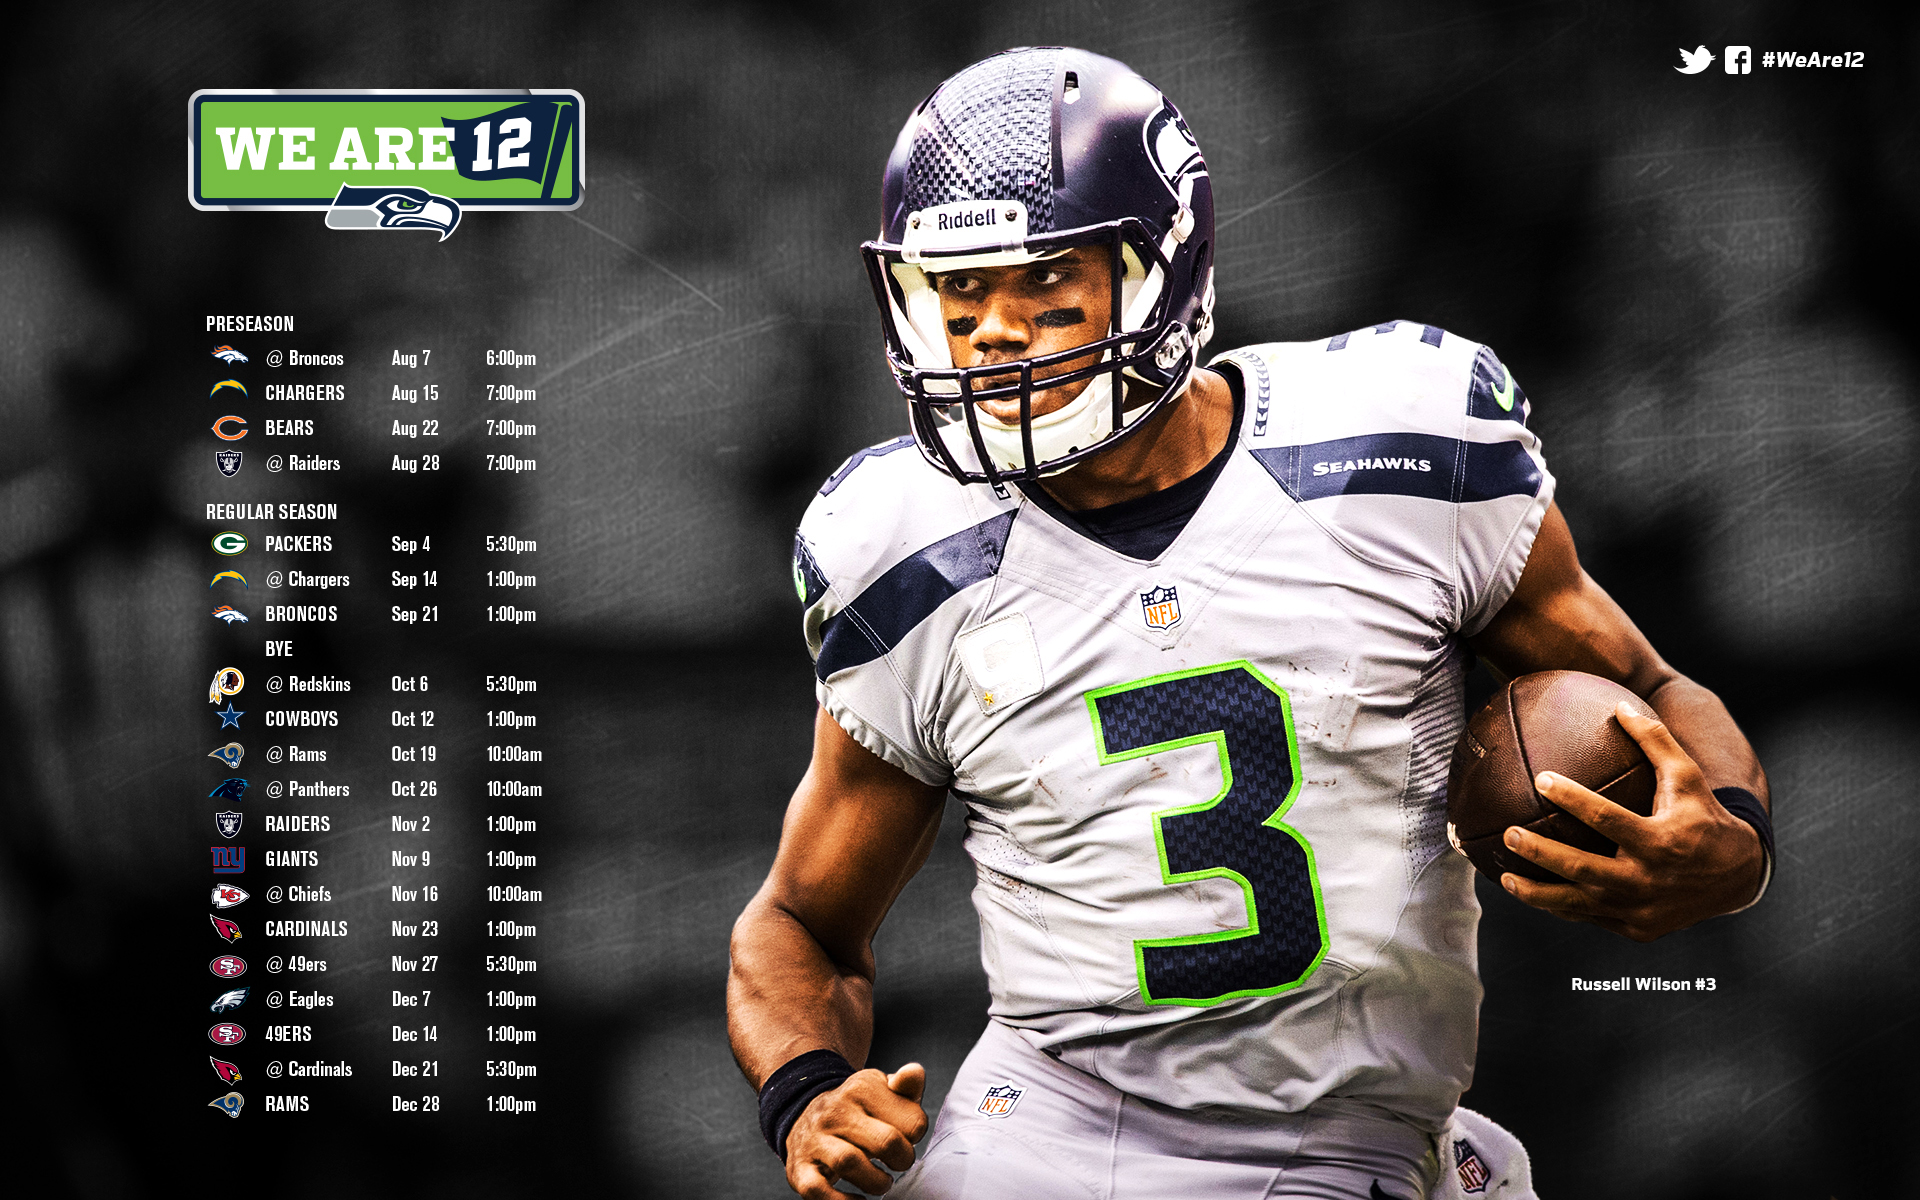 russell wilson wallpaper wallpapers - photo #7